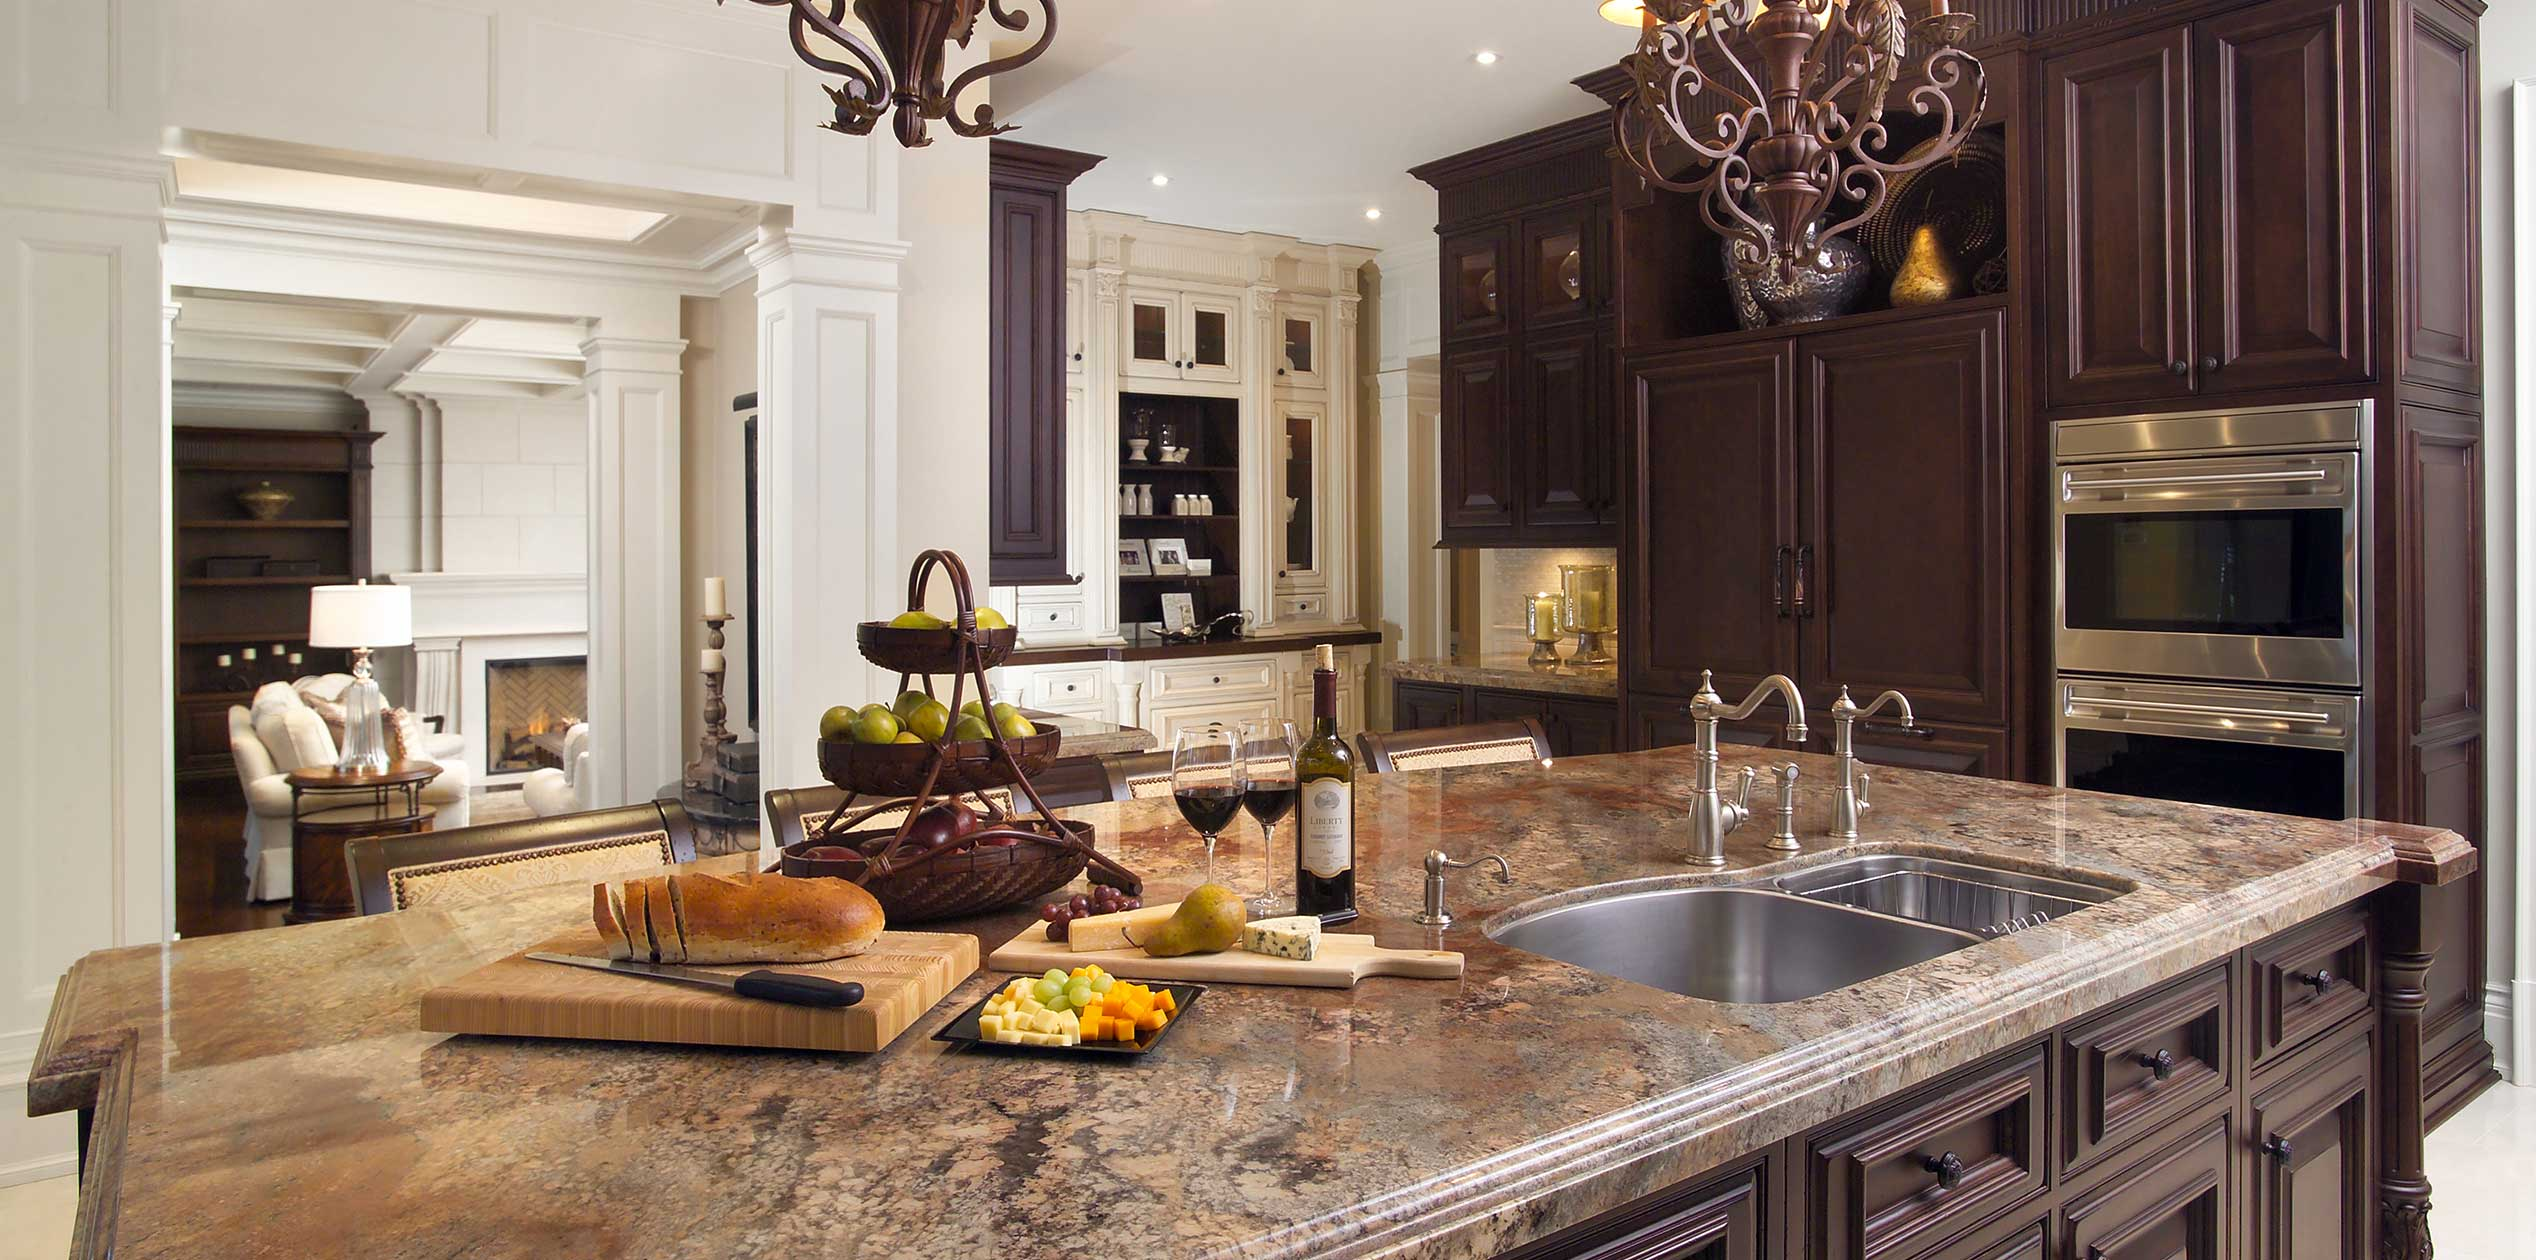 c Traditional Kitchen